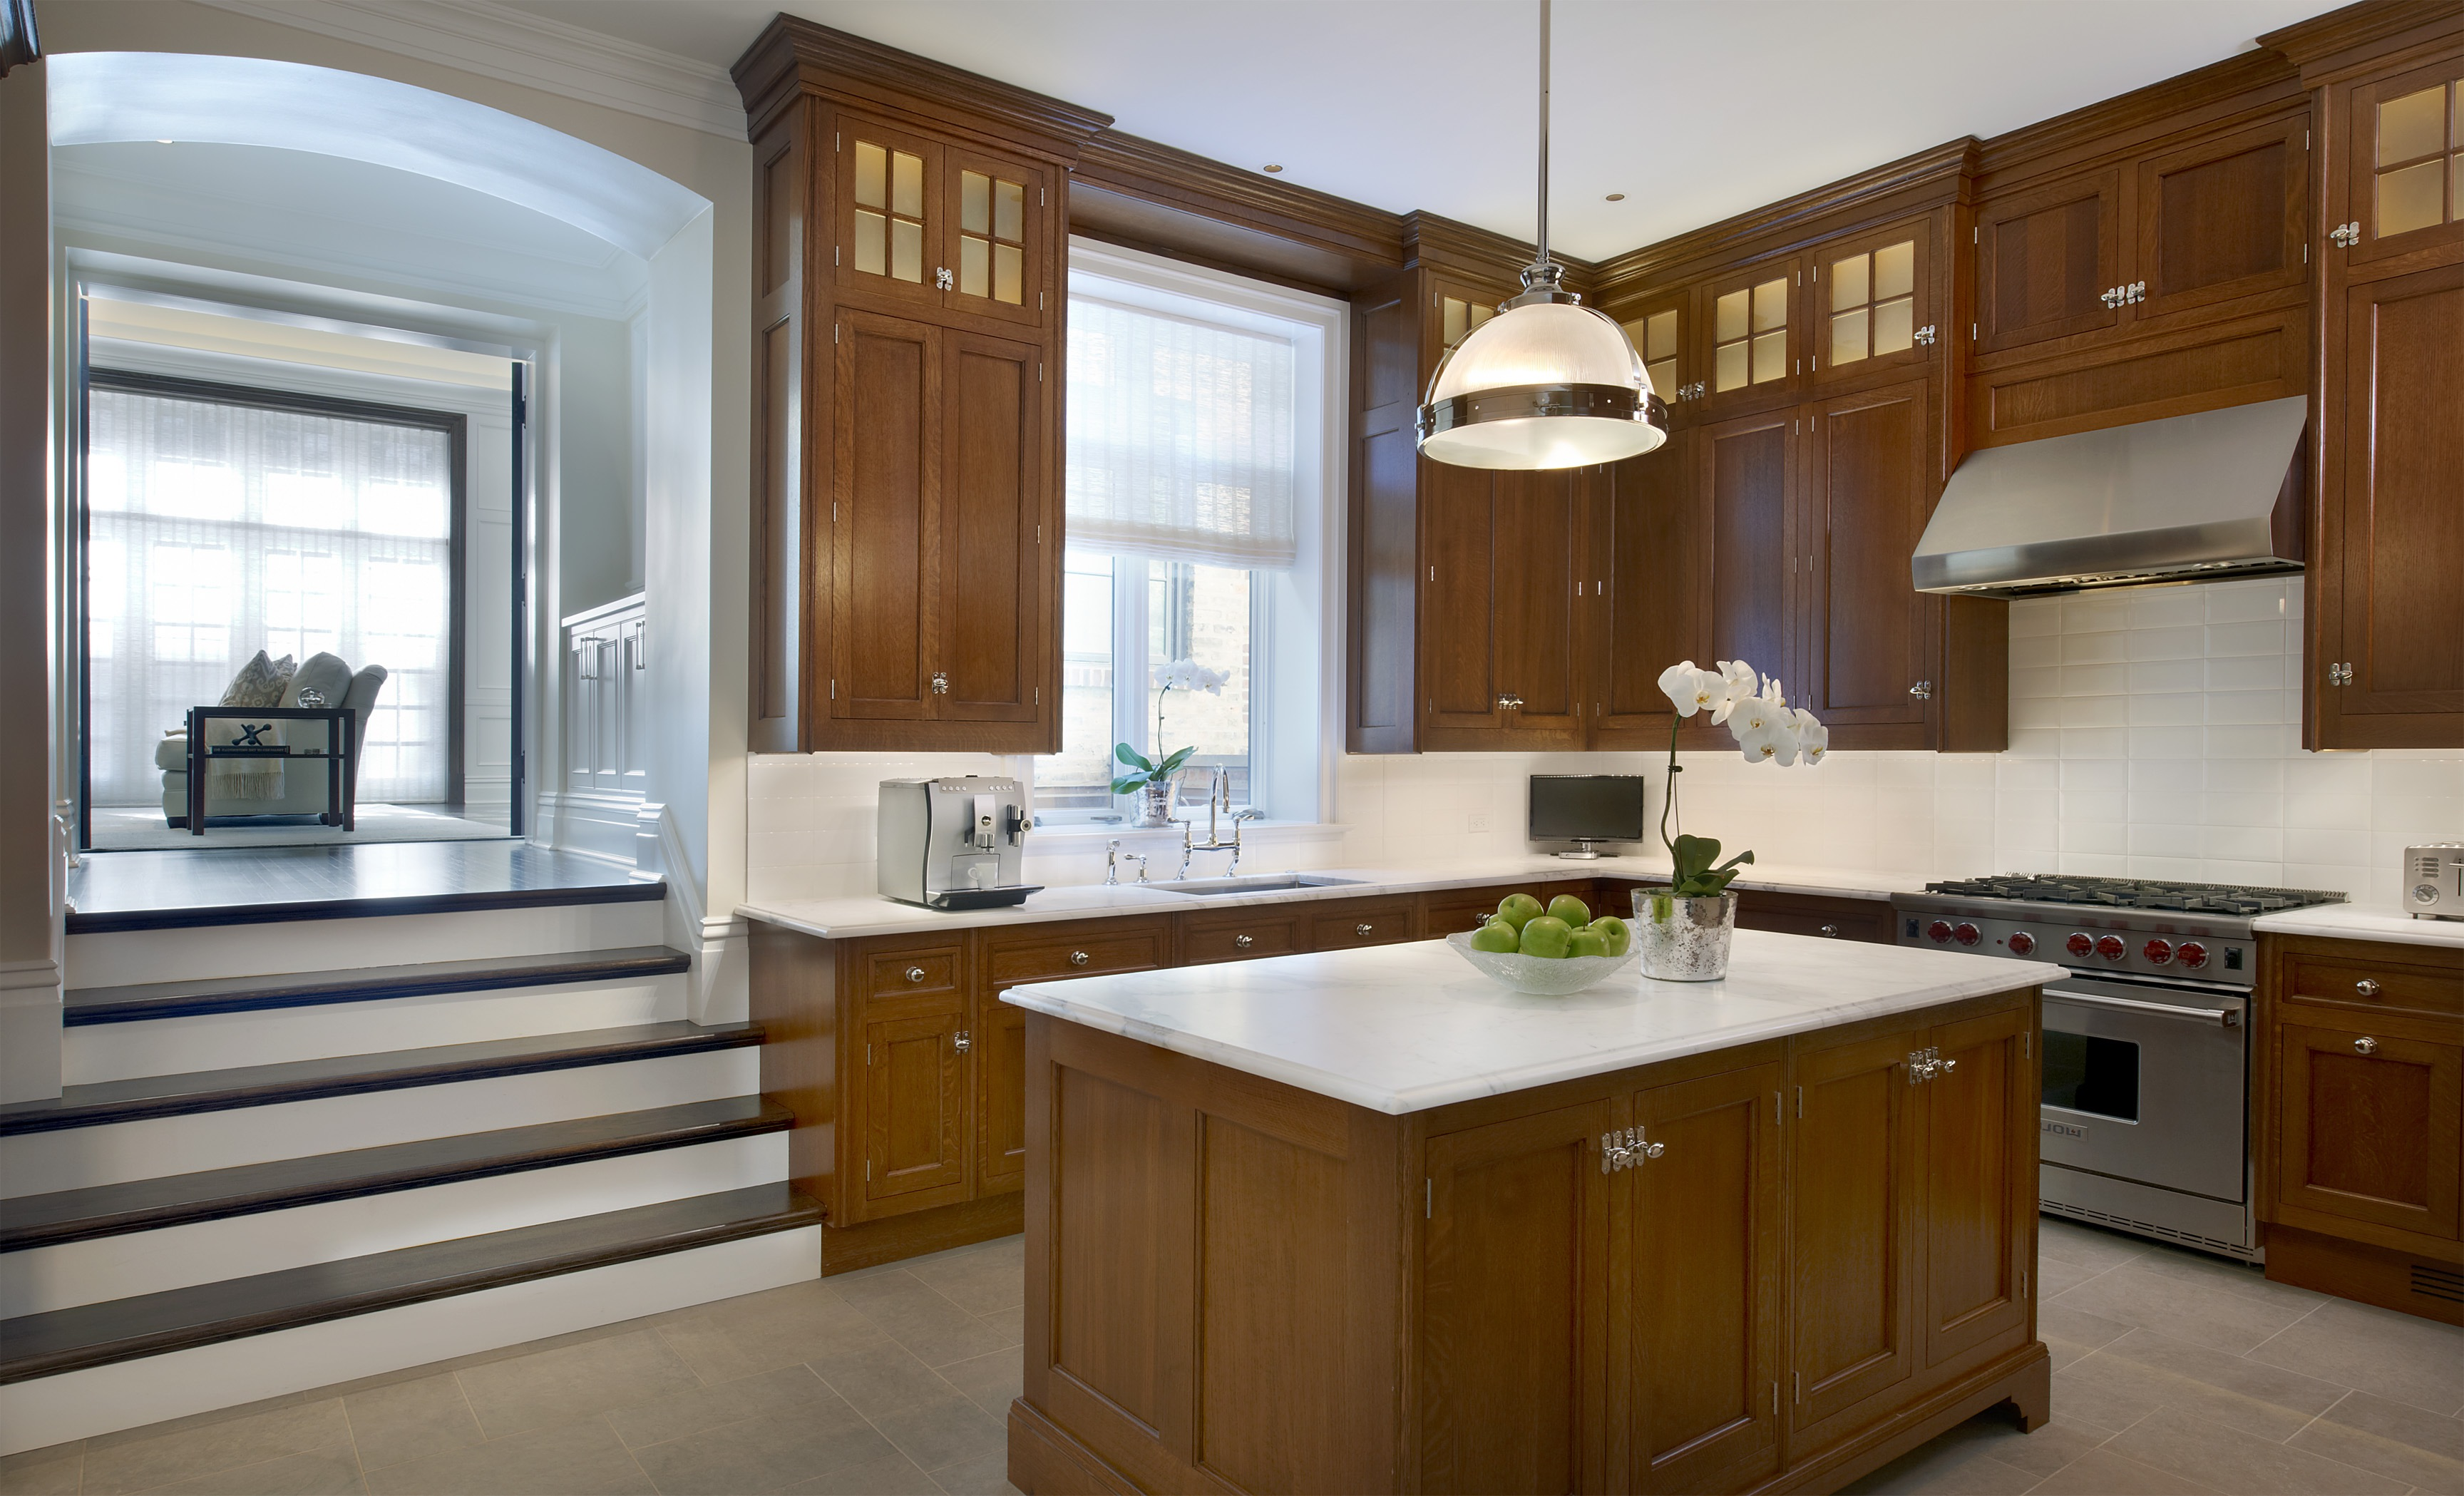 Wooden Kitchen Cabinets Color (Image 16 of 18)